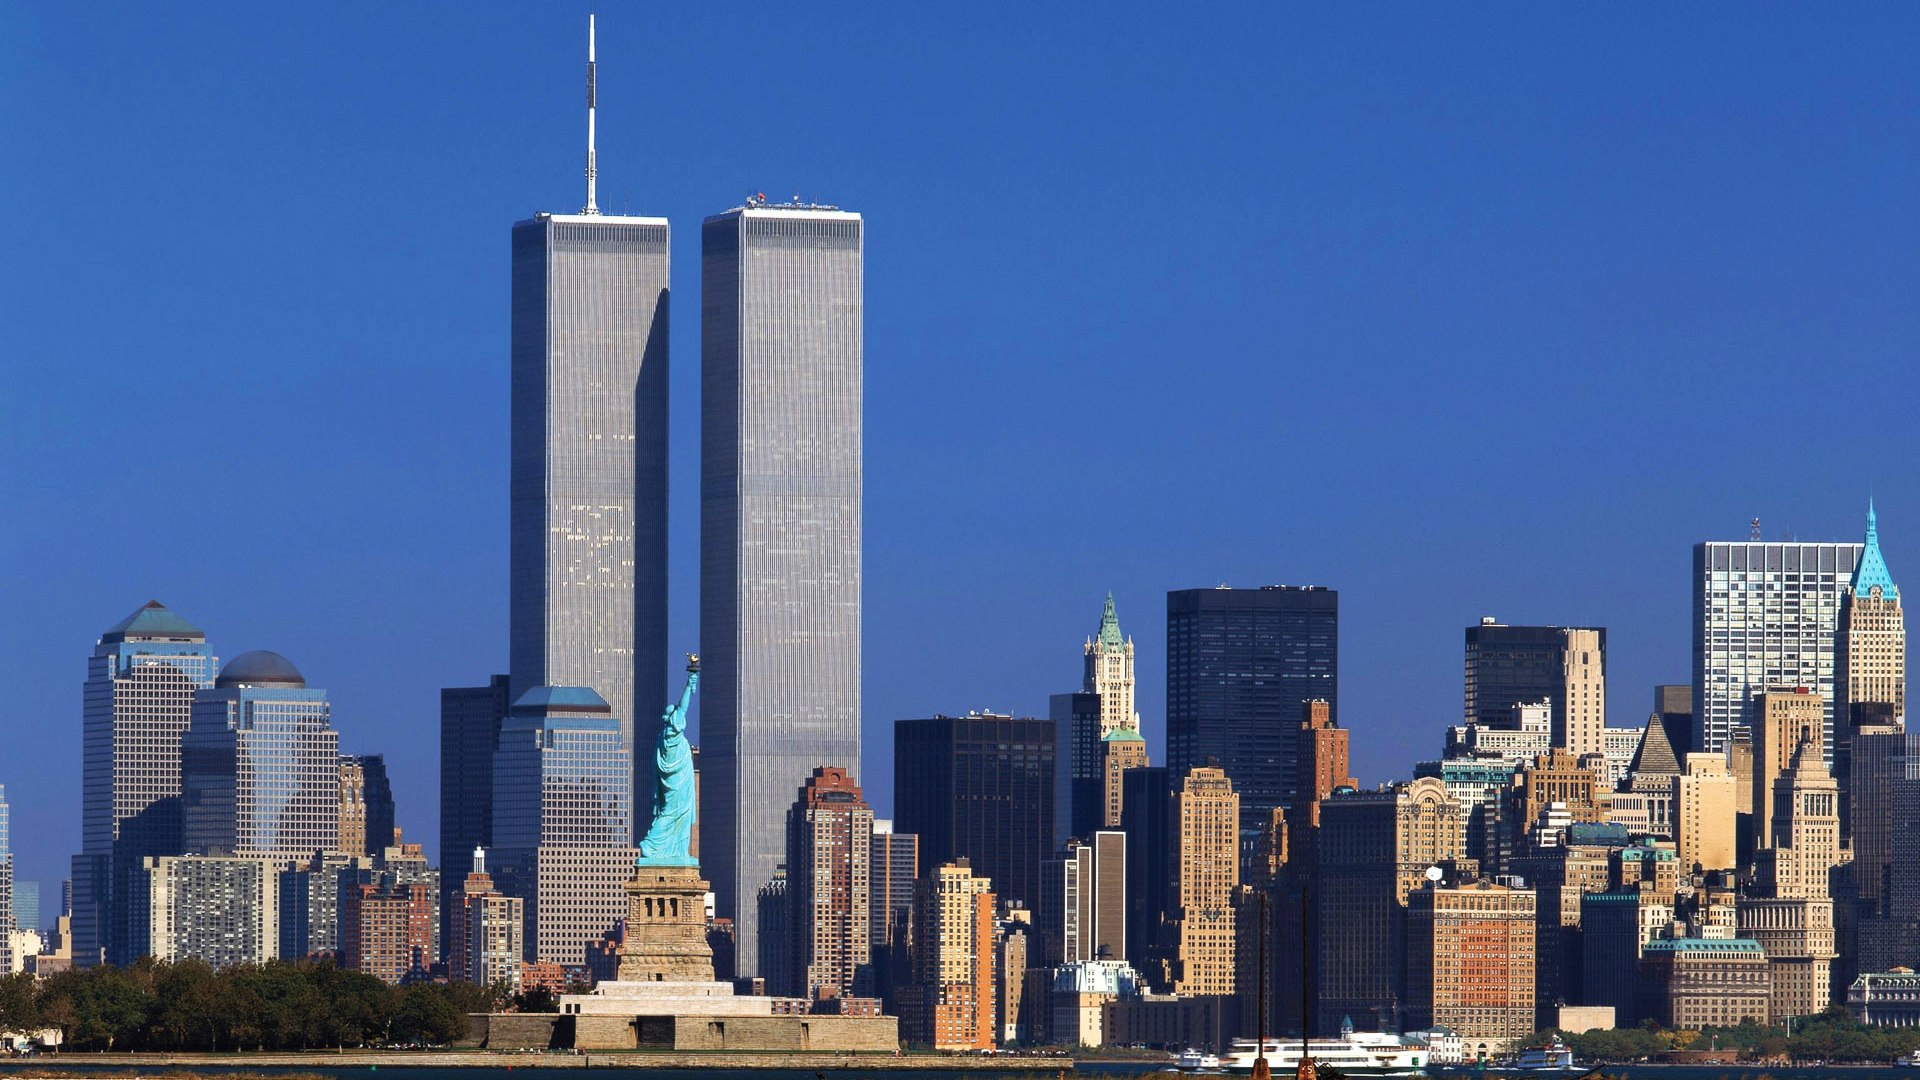 World Trade Center before the attacks on 9/11